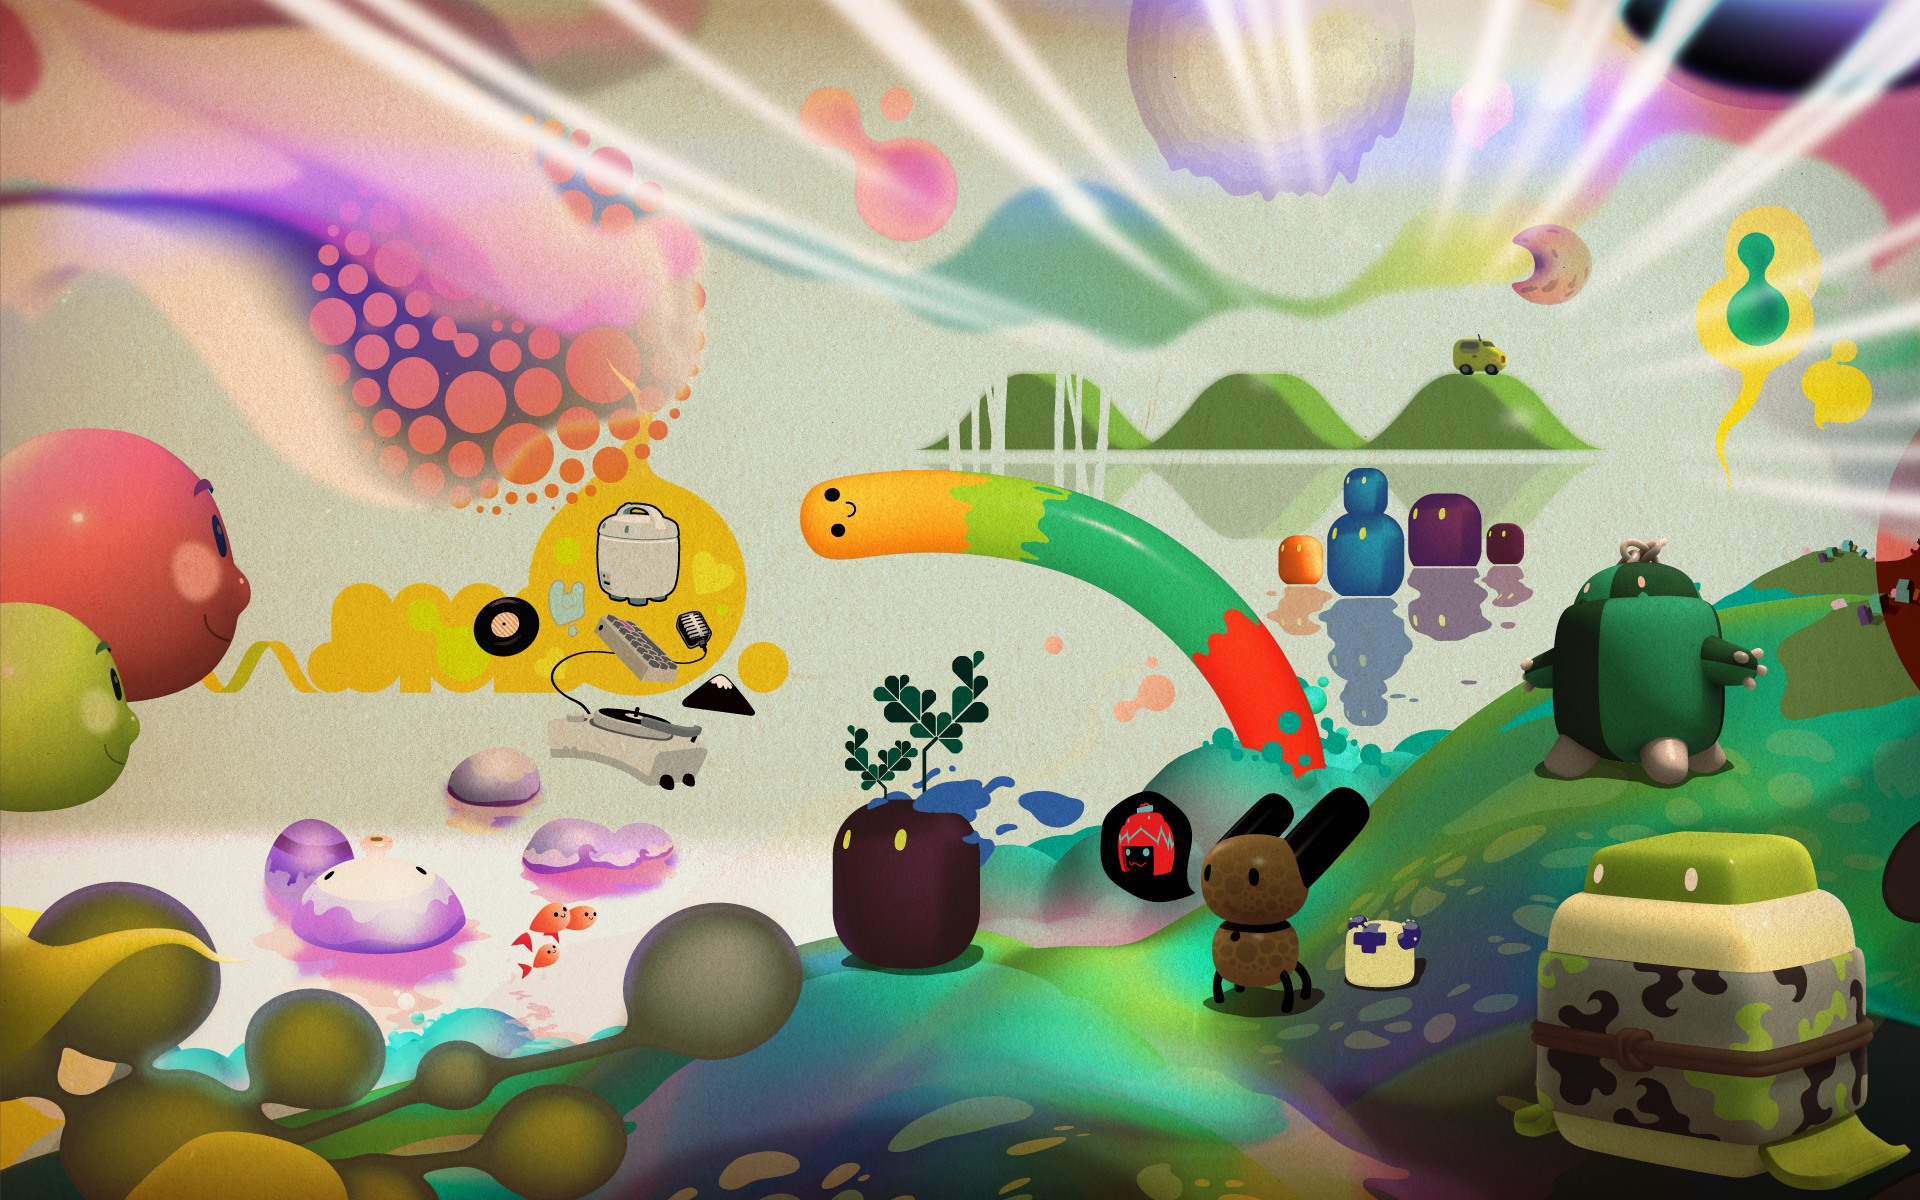 Download free HD 3d Abstract Cartoon S HD For Windows 7 Wallpaper, image